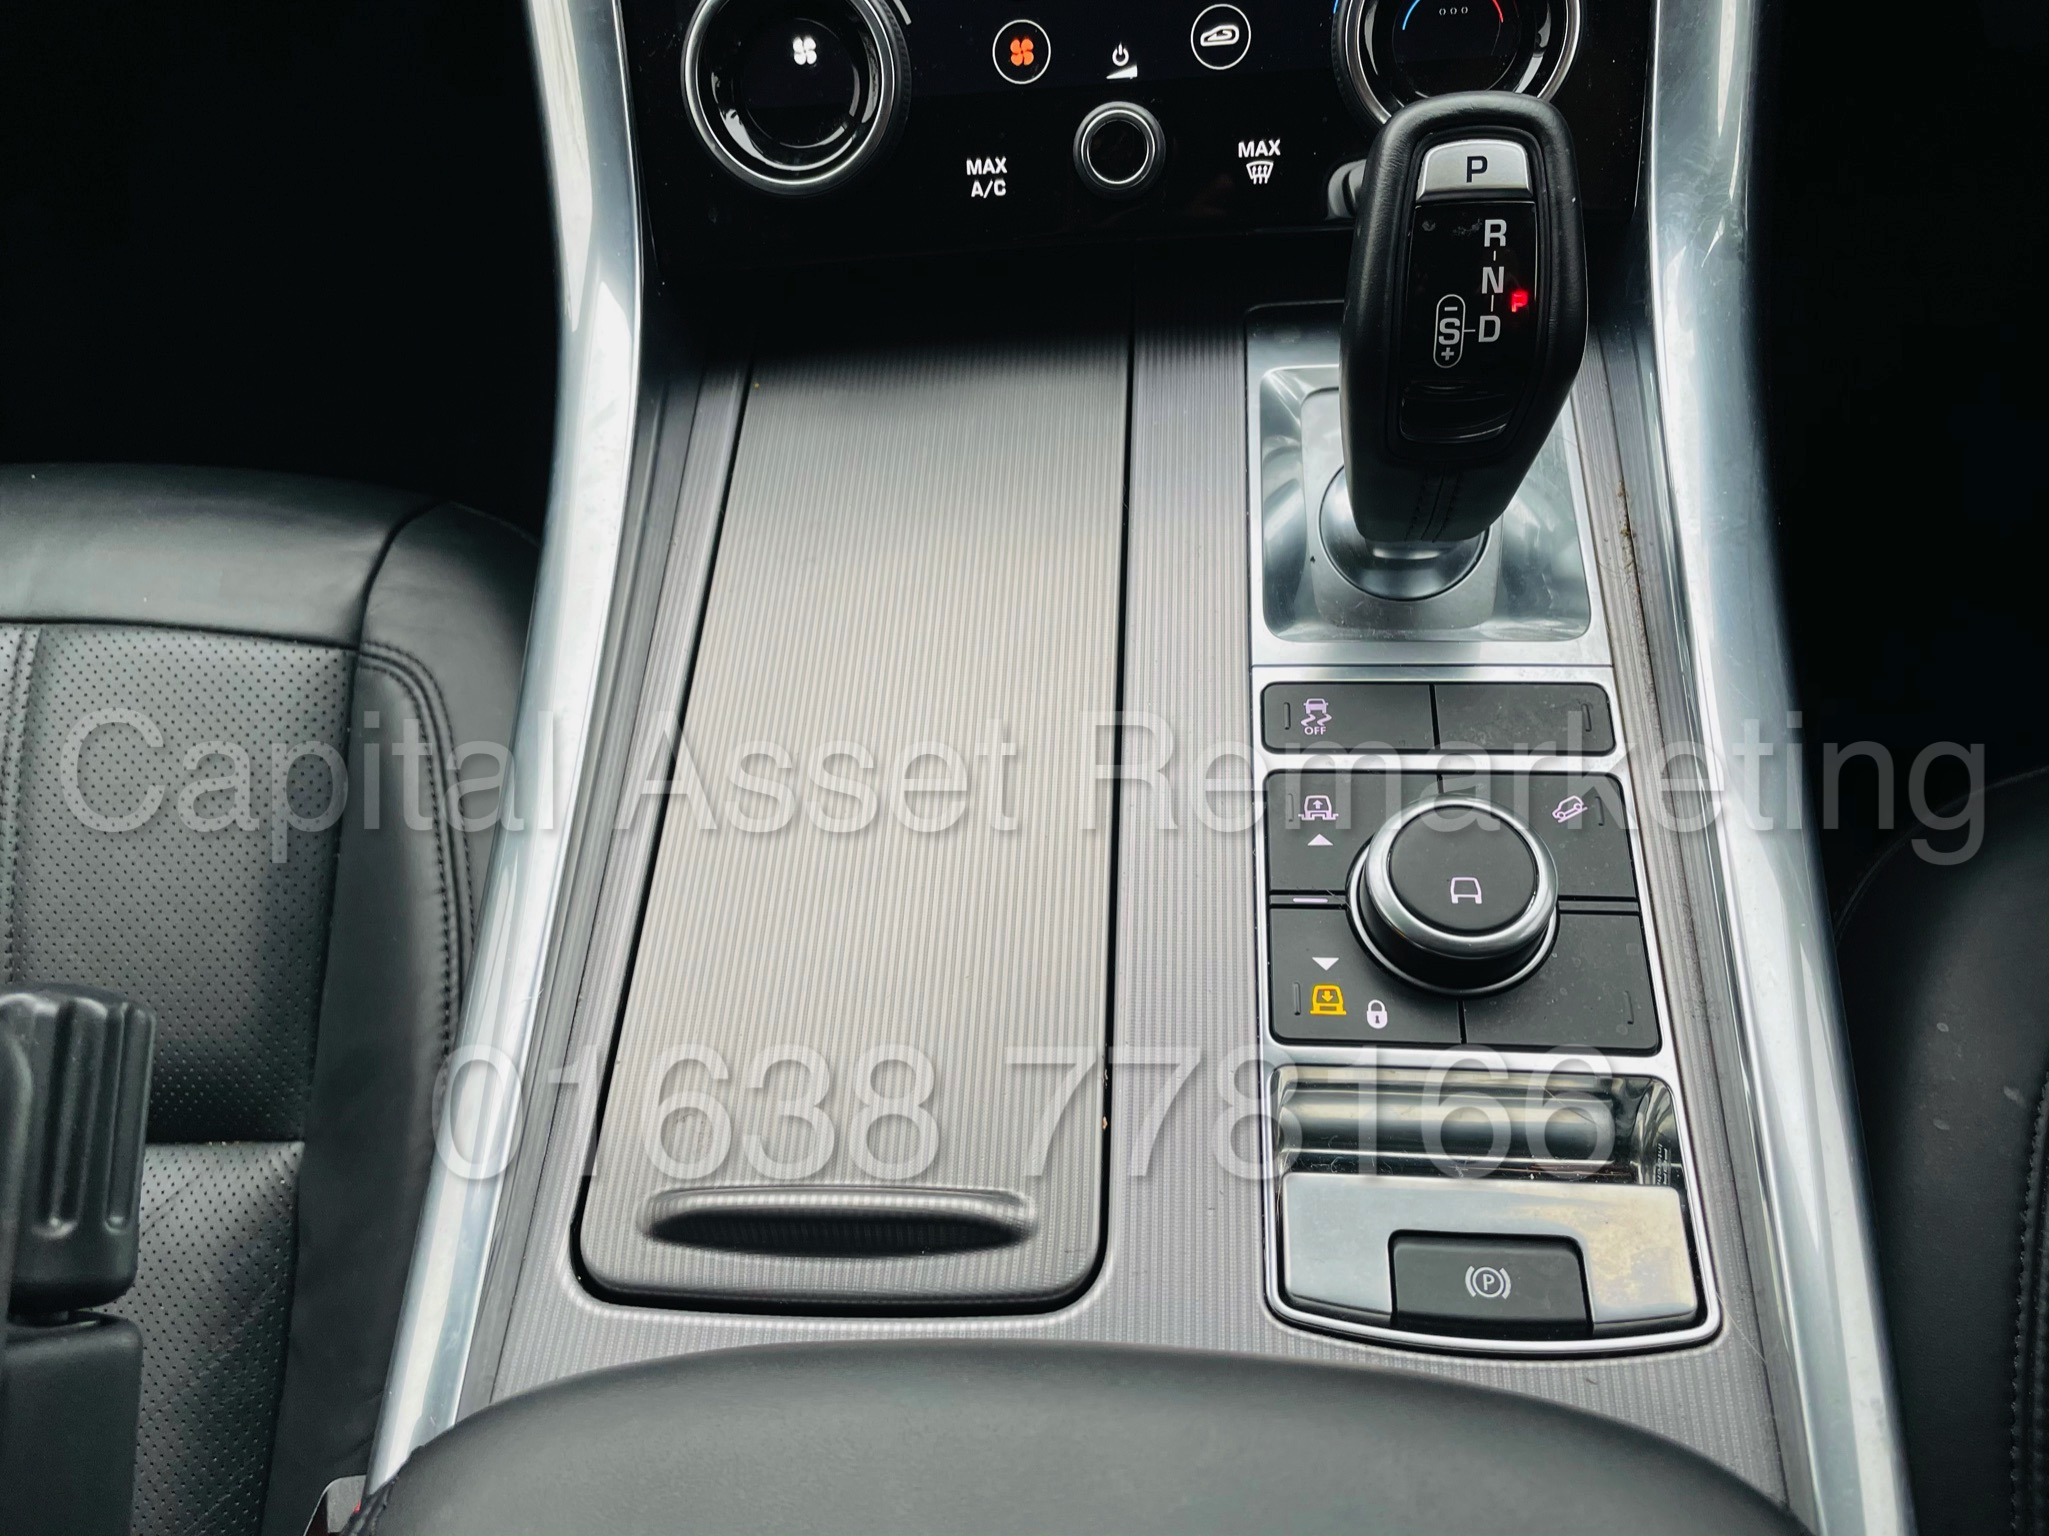 RANGE ROVER SPORT *HSE EDITION* SUV (2019 MODEL) '3.0 SDV6 - 306 BHP - 8 SPEED AUTO' *FULLY LOADED* - Image 52 of 56